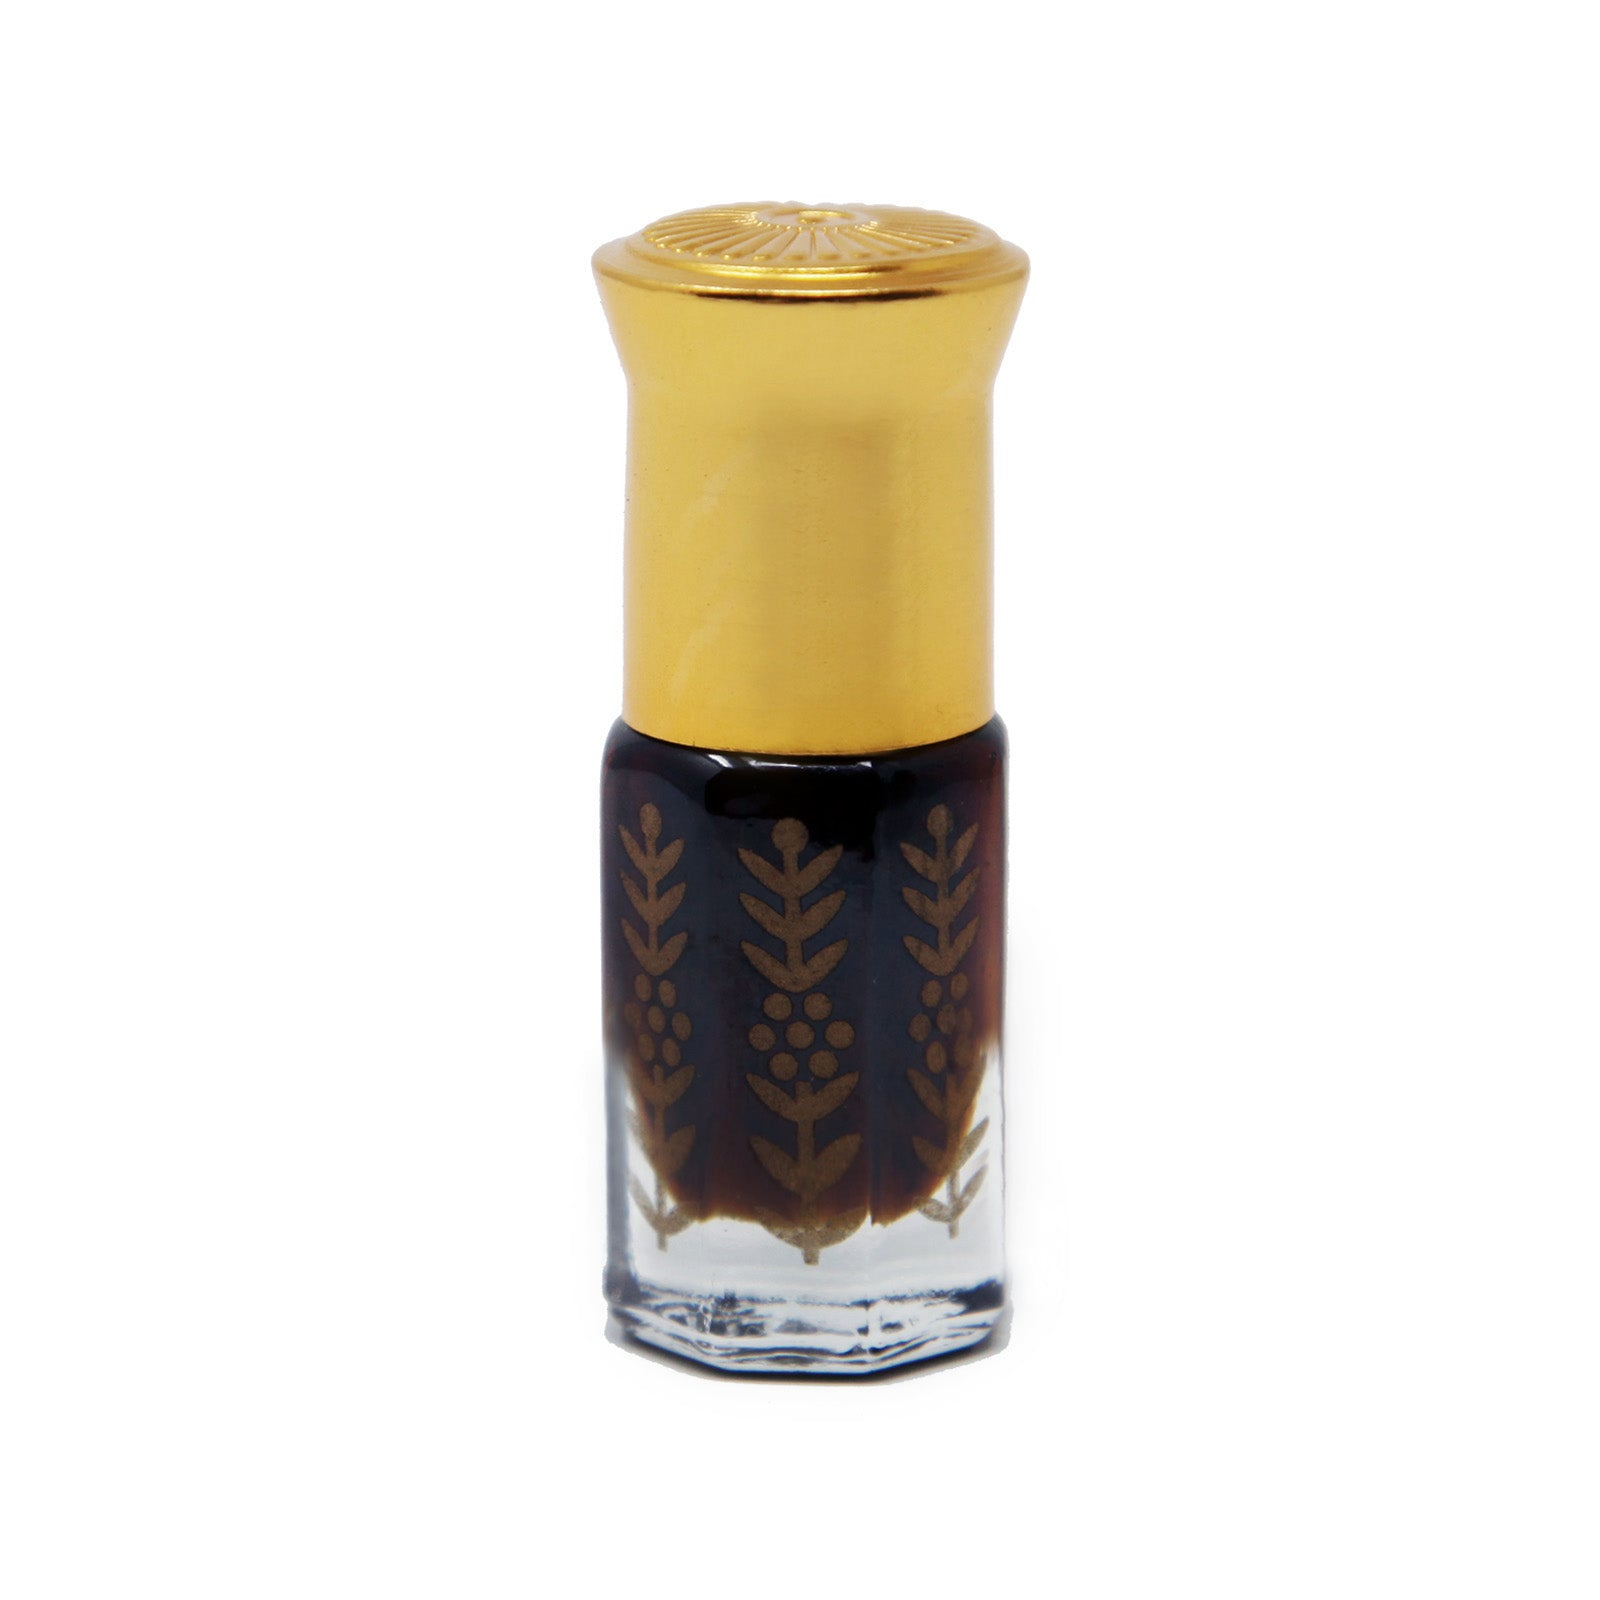 Royal Cambodian Oud Oil - 3ml